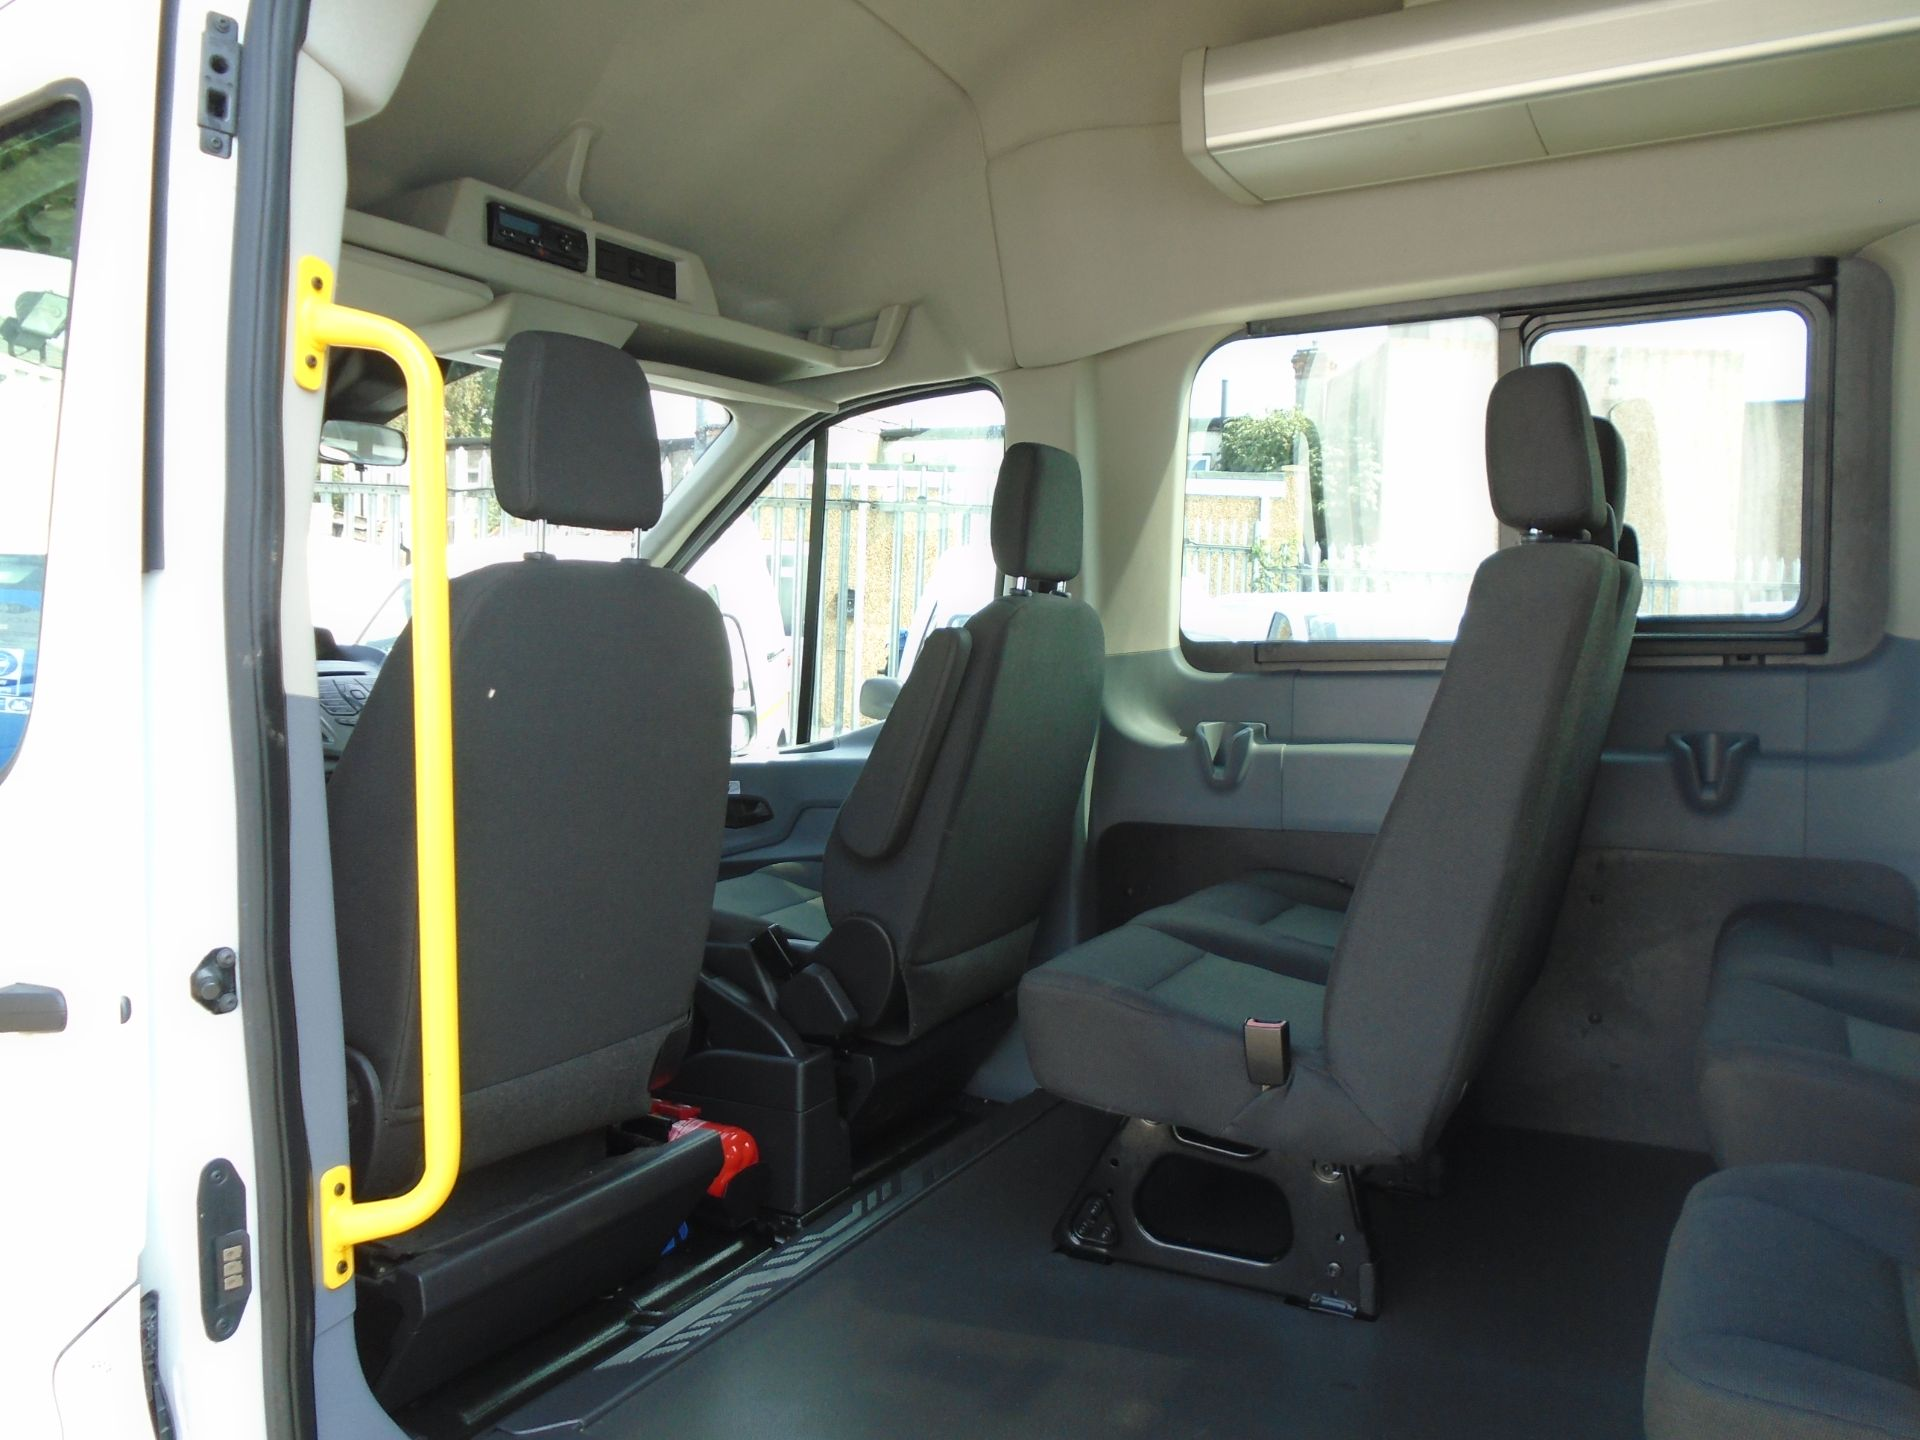 2016 Ford Transit 2.2 Tdci 125Ps H3 17 Seater (FP16UMV) Image 14